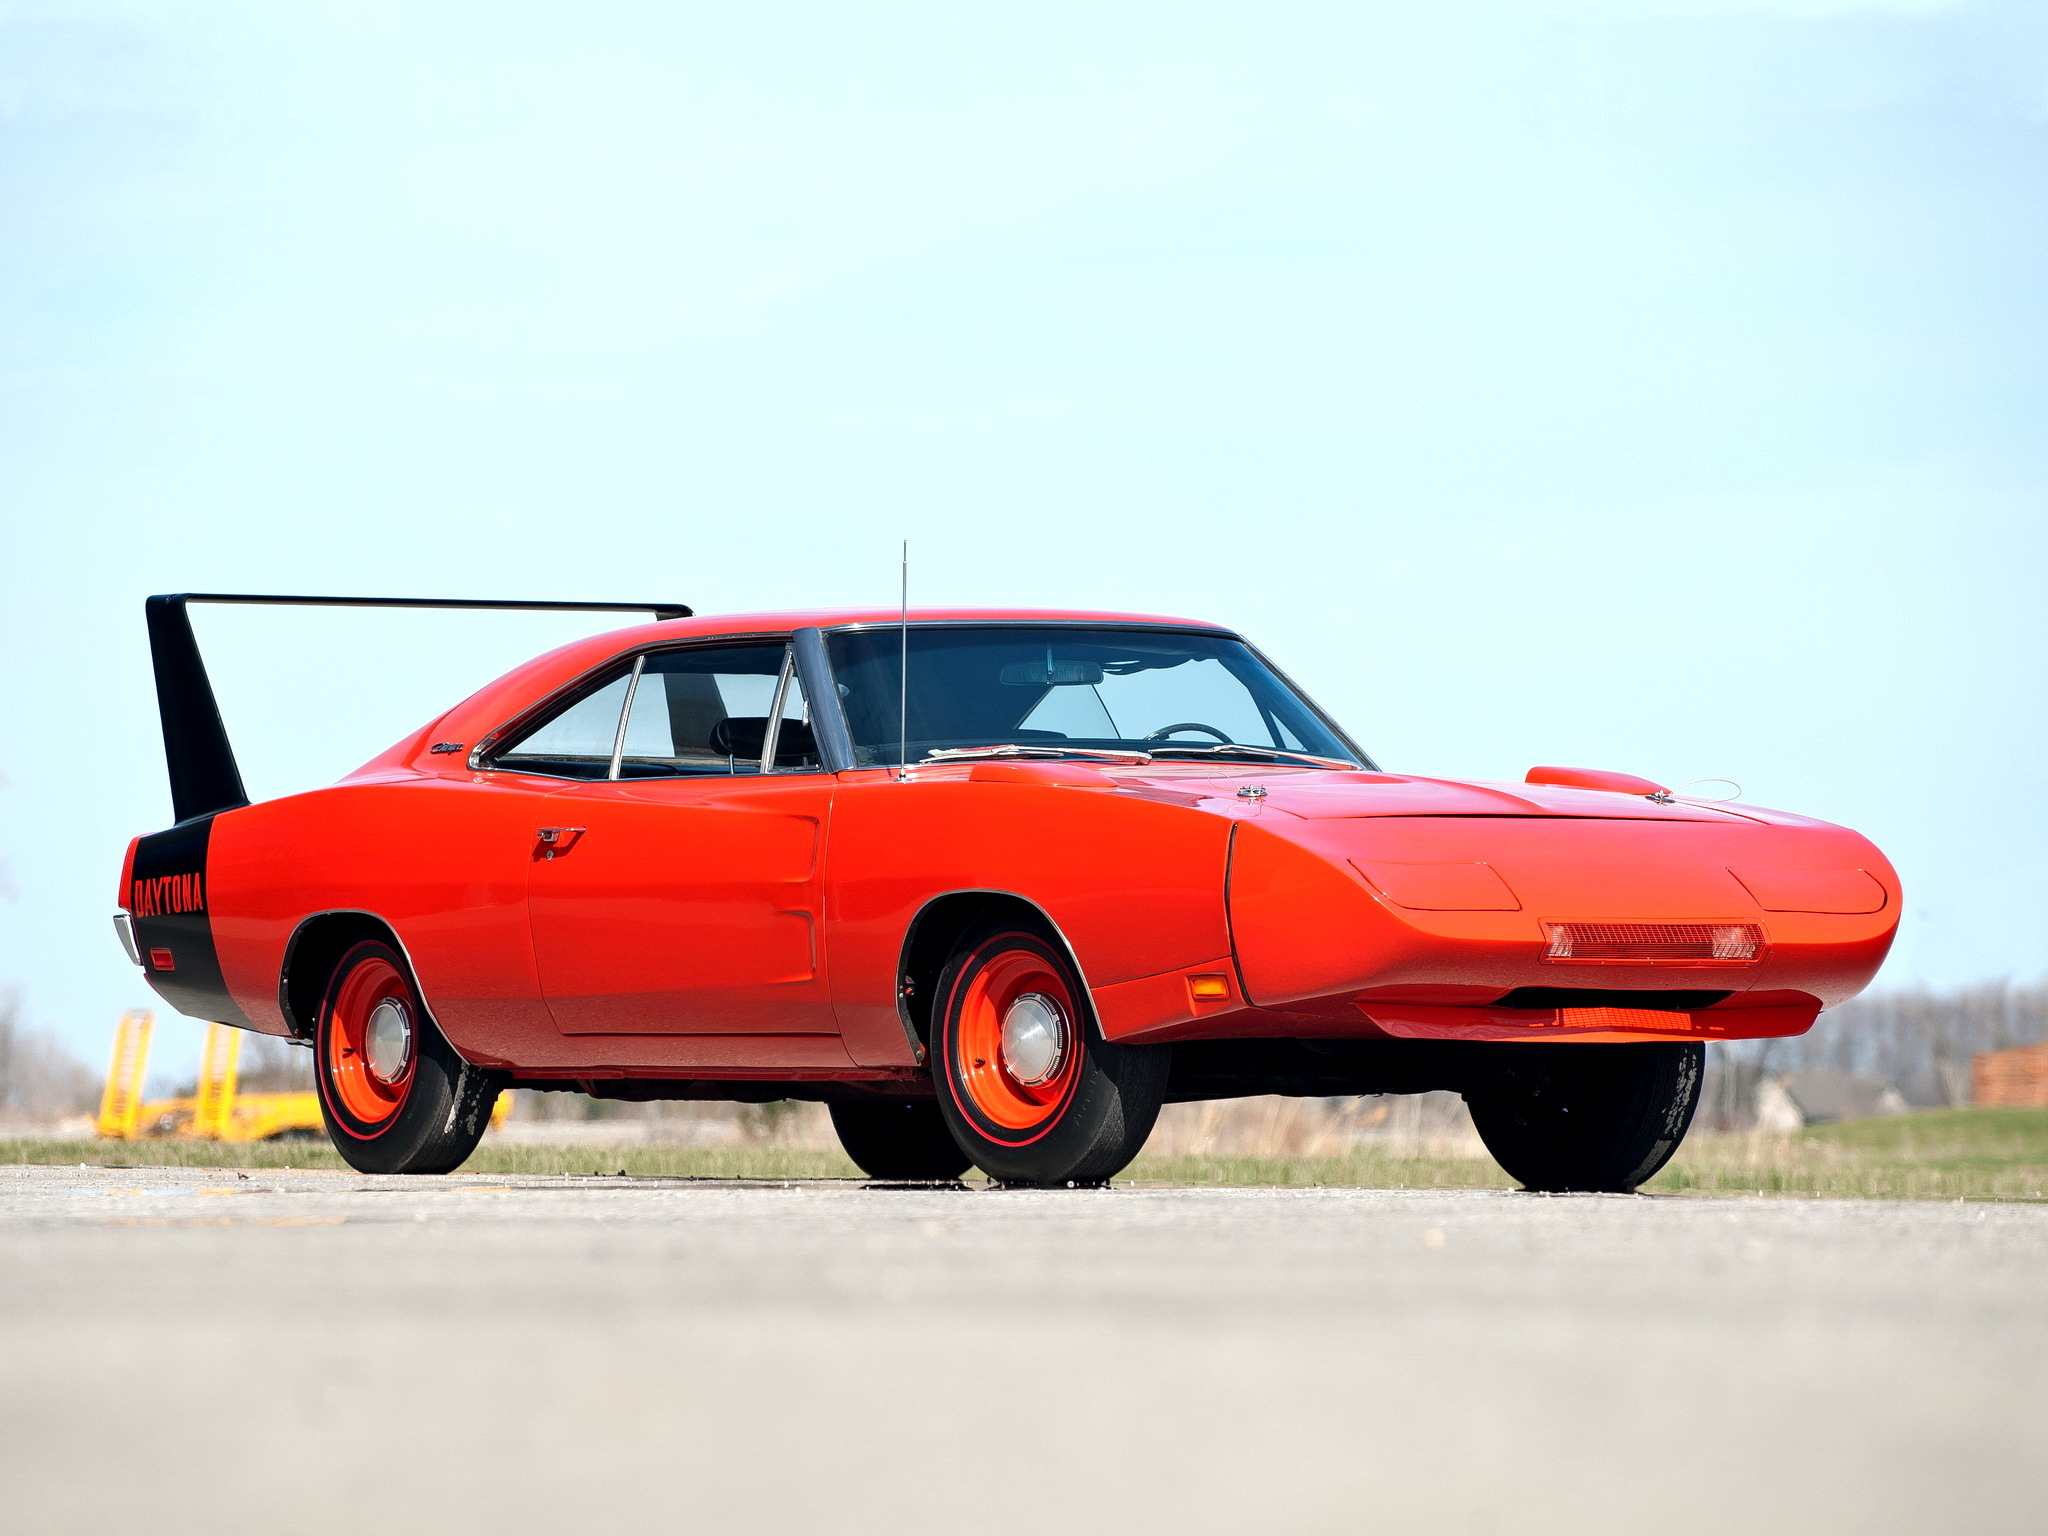 1969 dodge charger daytona muscle classic supercar supercars wallpaper. Cars Review. Best American Auto & Cars Review